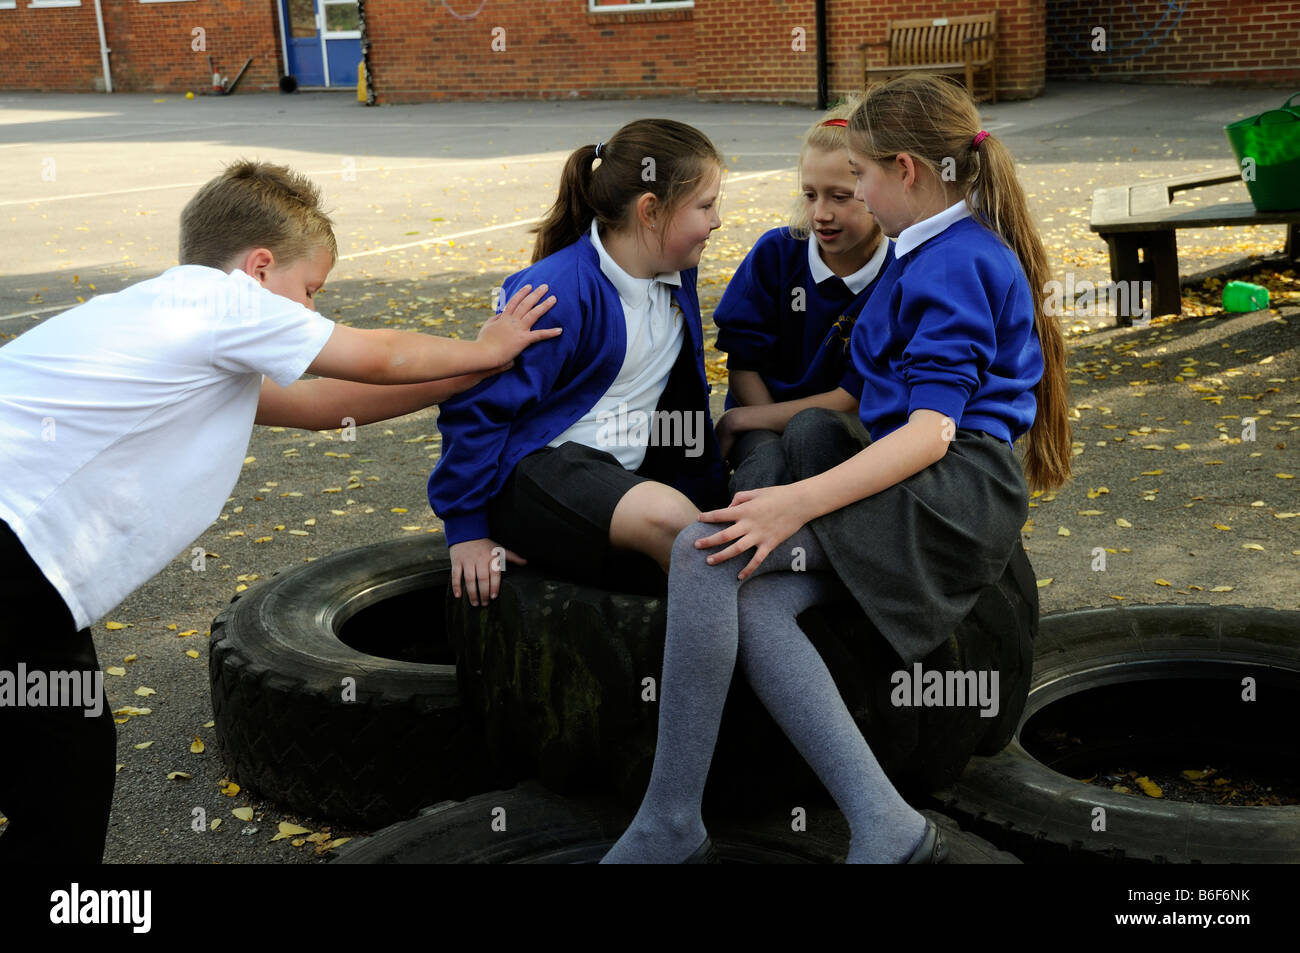 Photo - Boy bullying and pushing a group of girls in a primary school ...